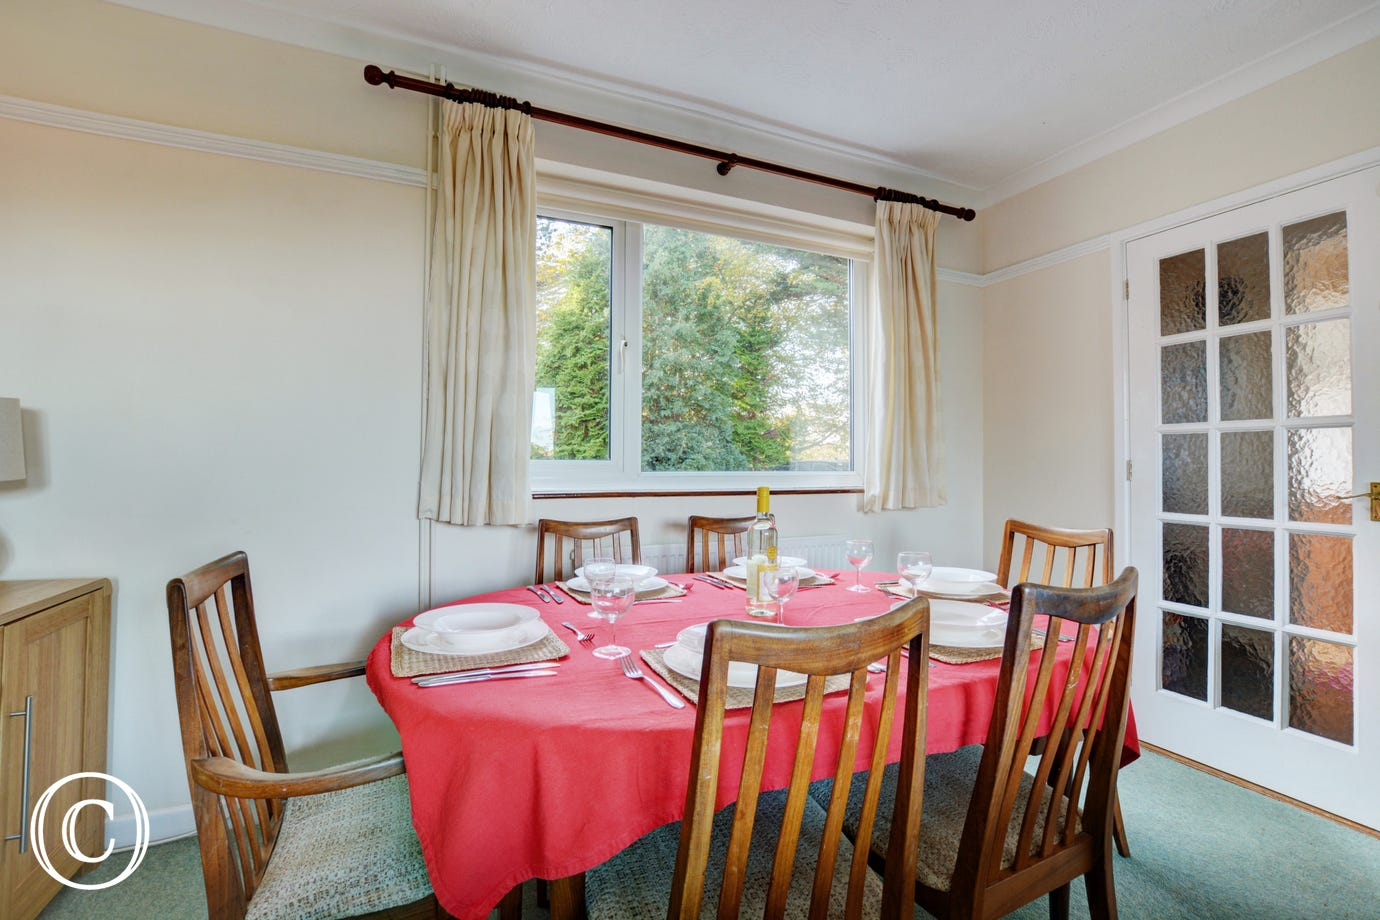 Lovely dining area with a table and chairs for more formal family meals